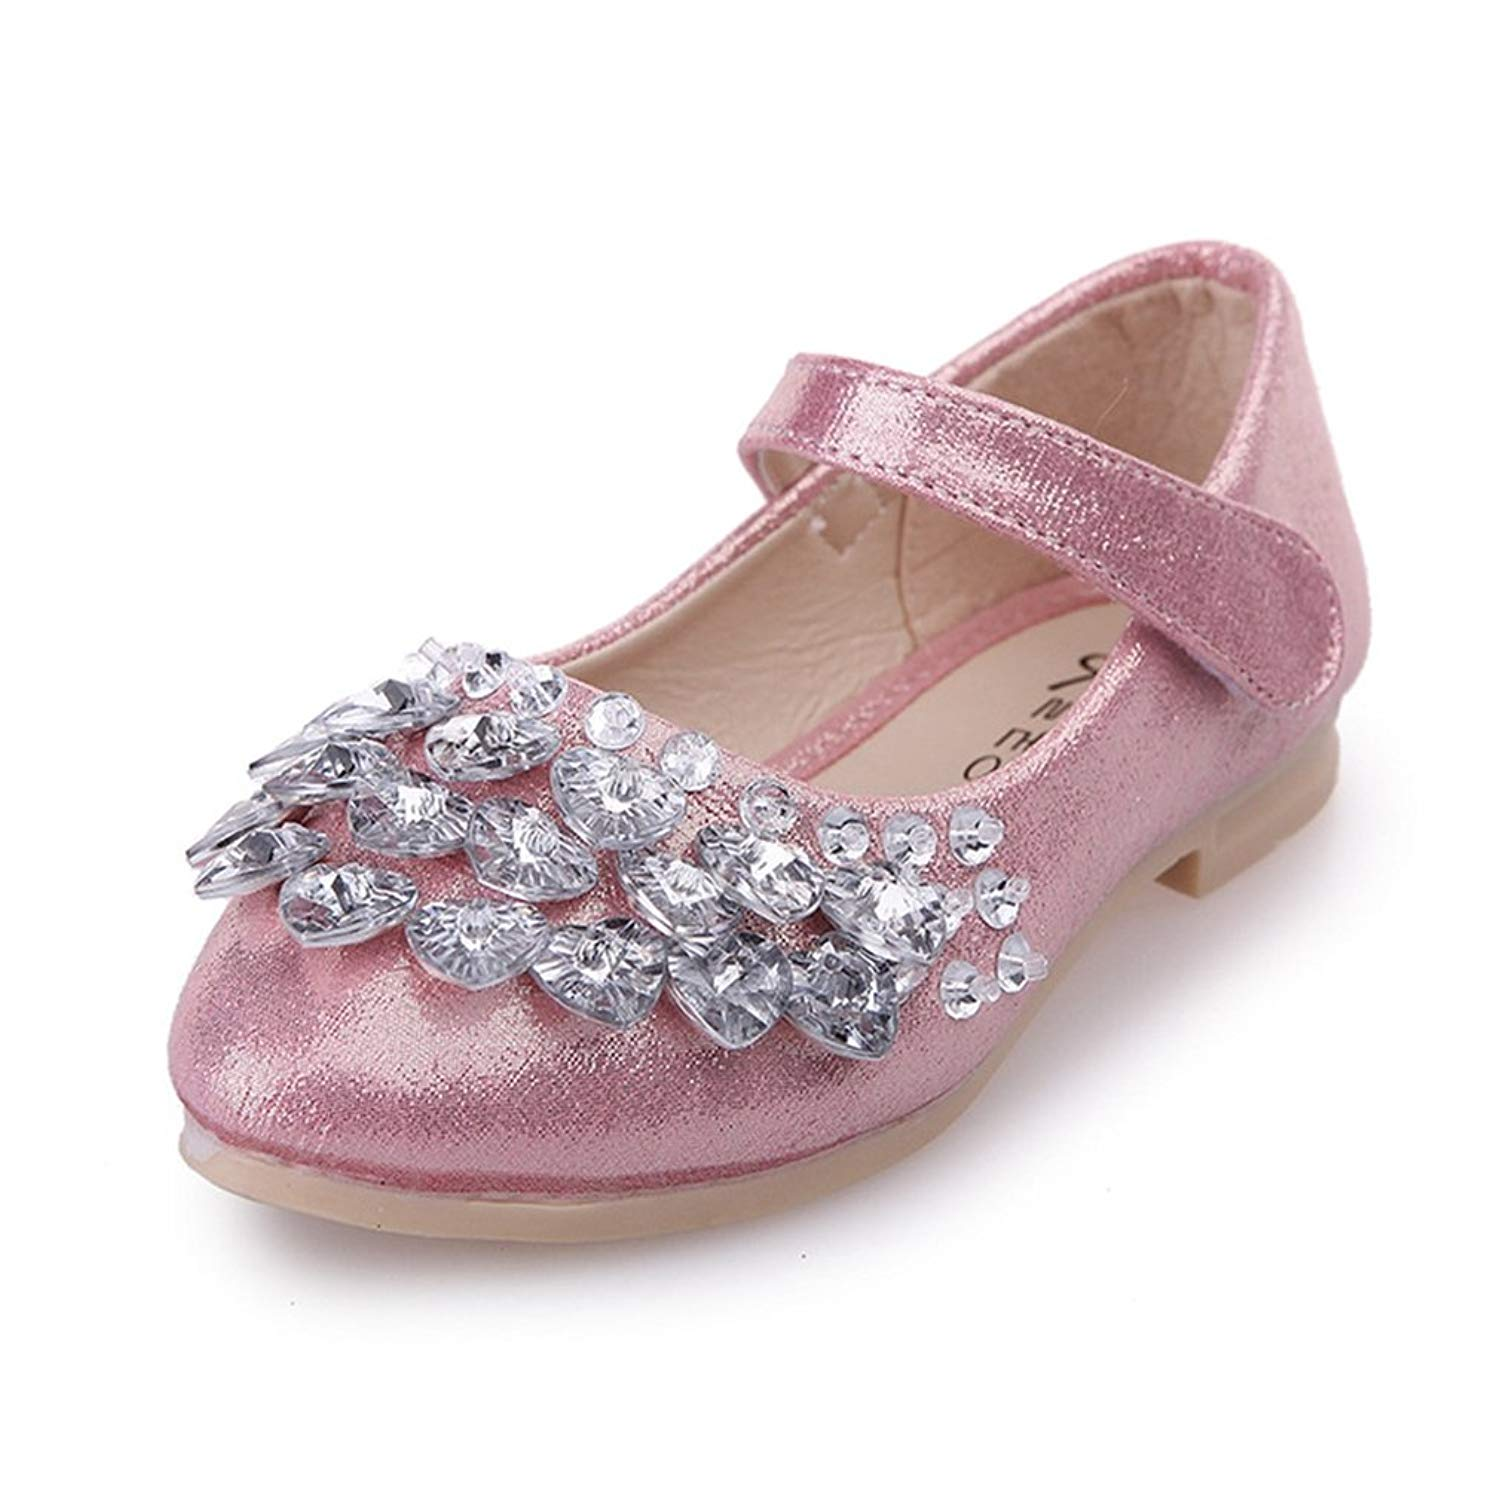 CYBLING Girls Bowknot Wedding Party Low Heel Mary Jane Sequin Princess Dress Shoes